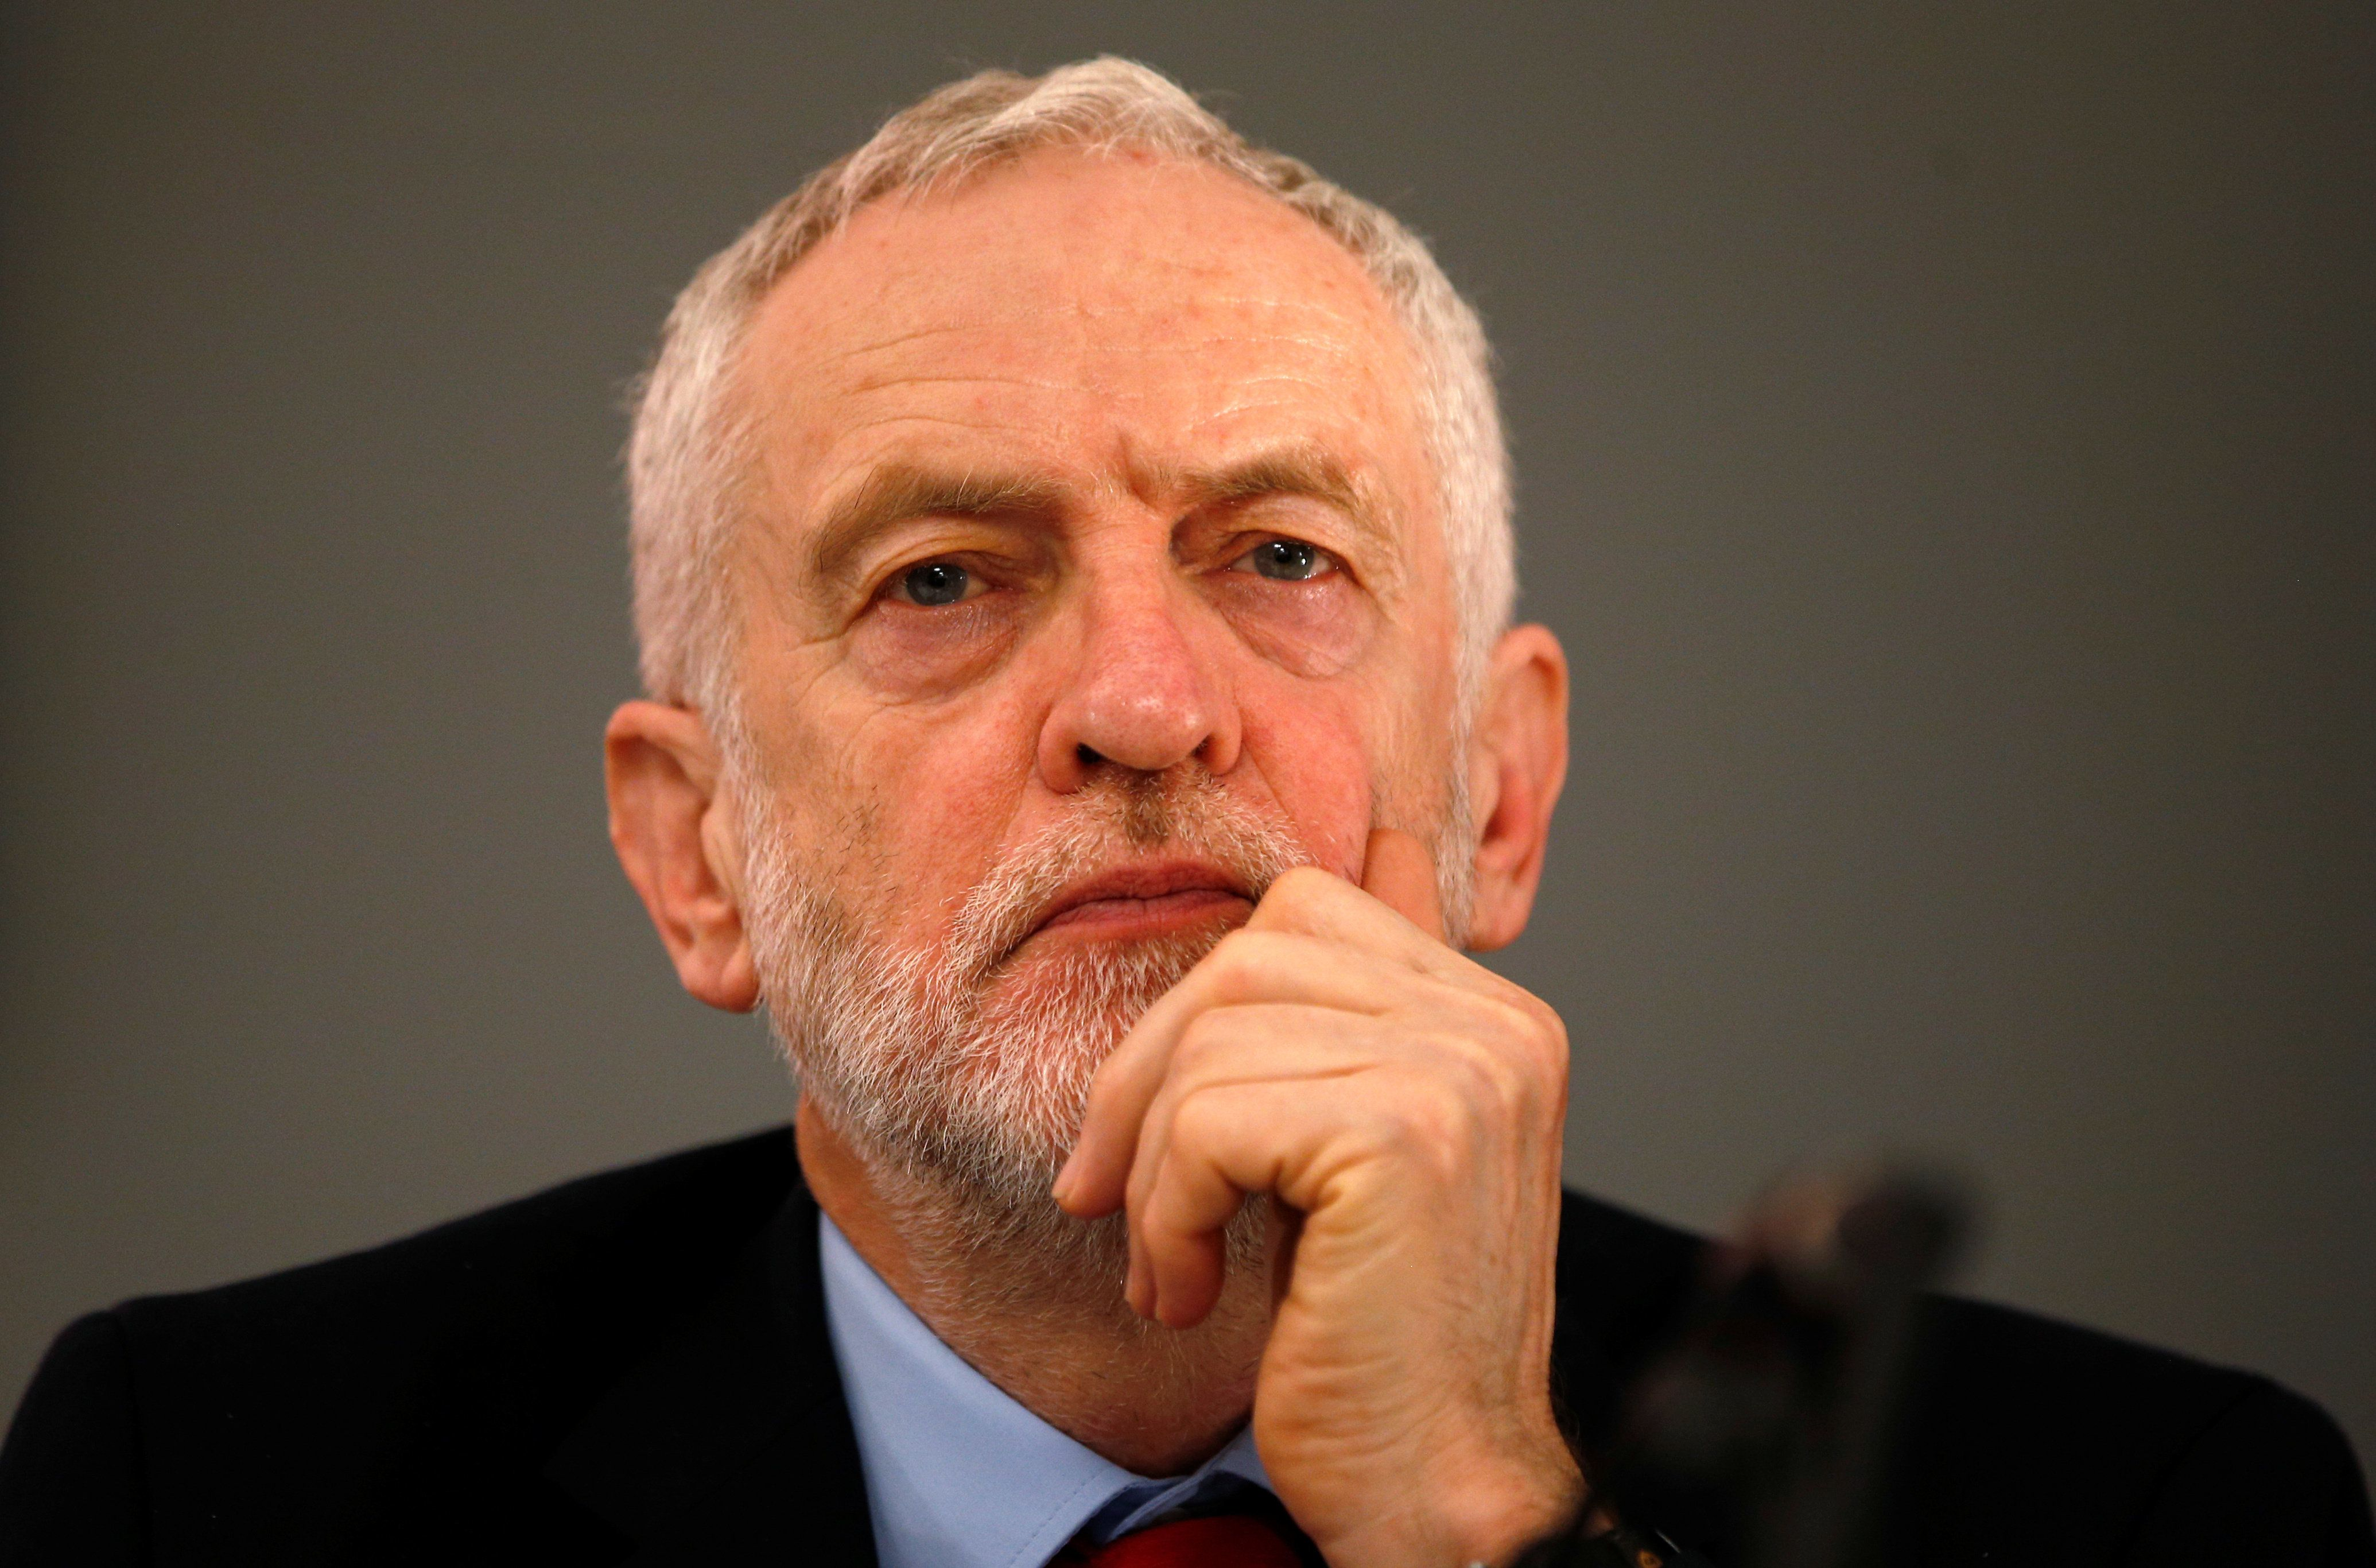 Jeremy Corbyn To Meet With Jewish Organisations To Discuss